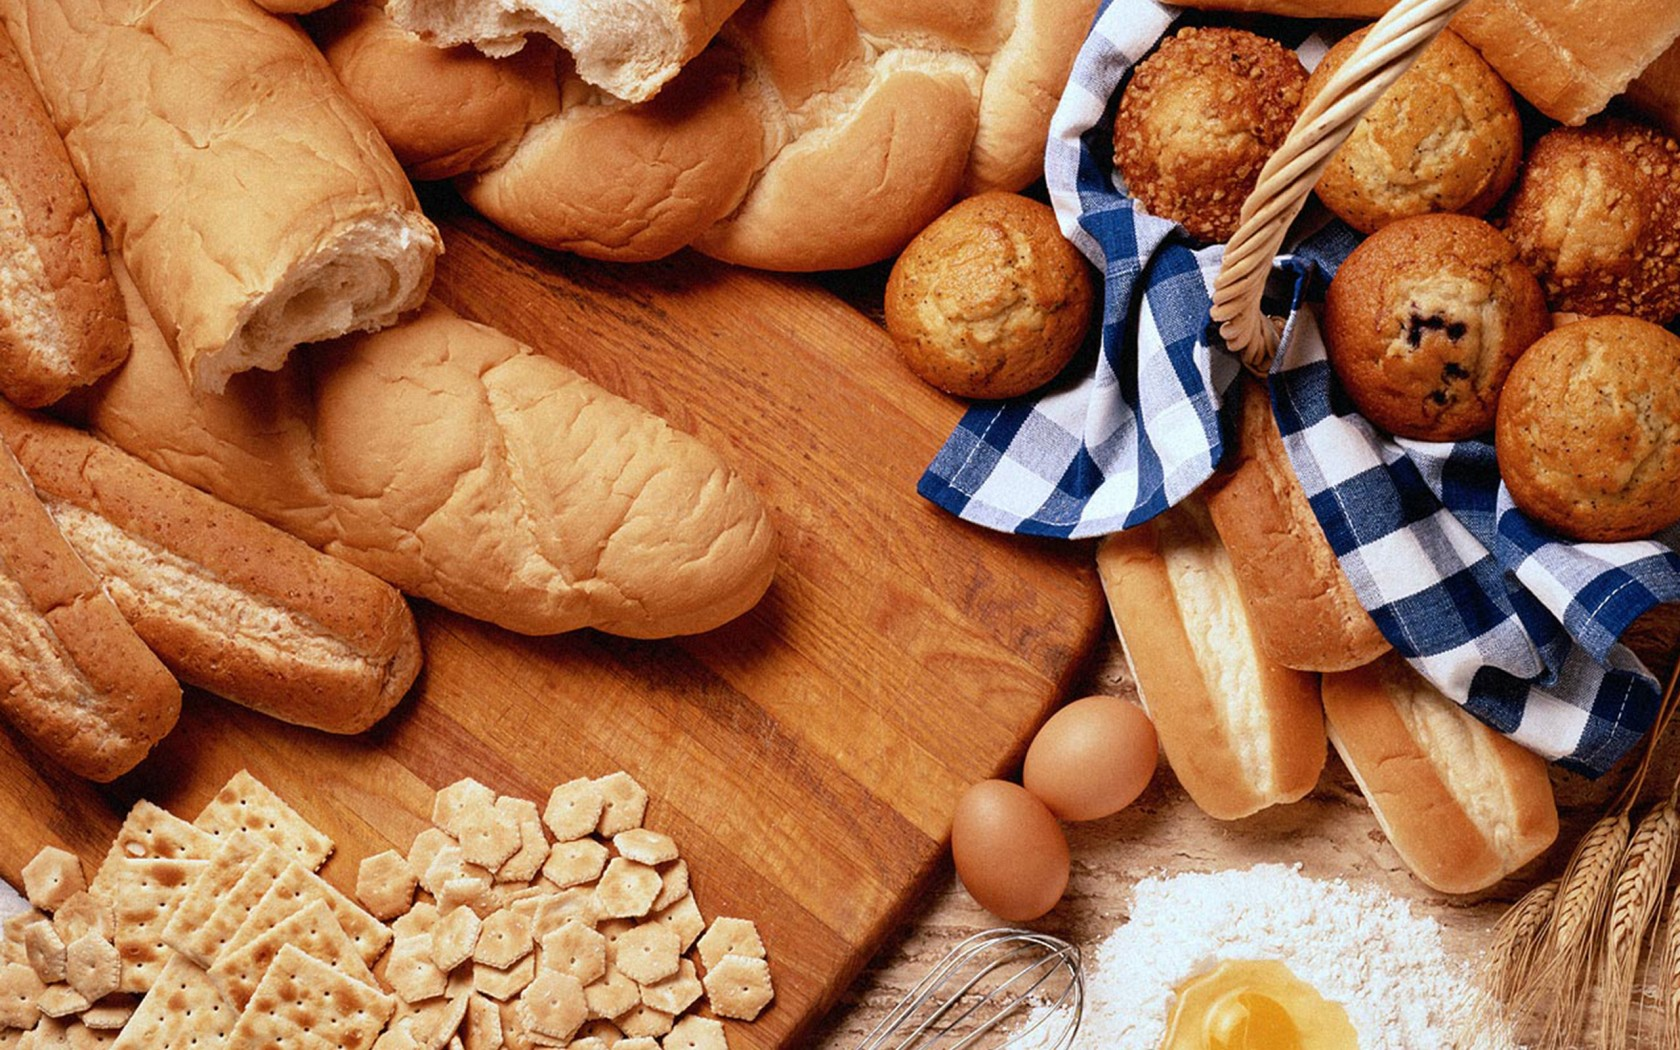 baking wallpaper and background